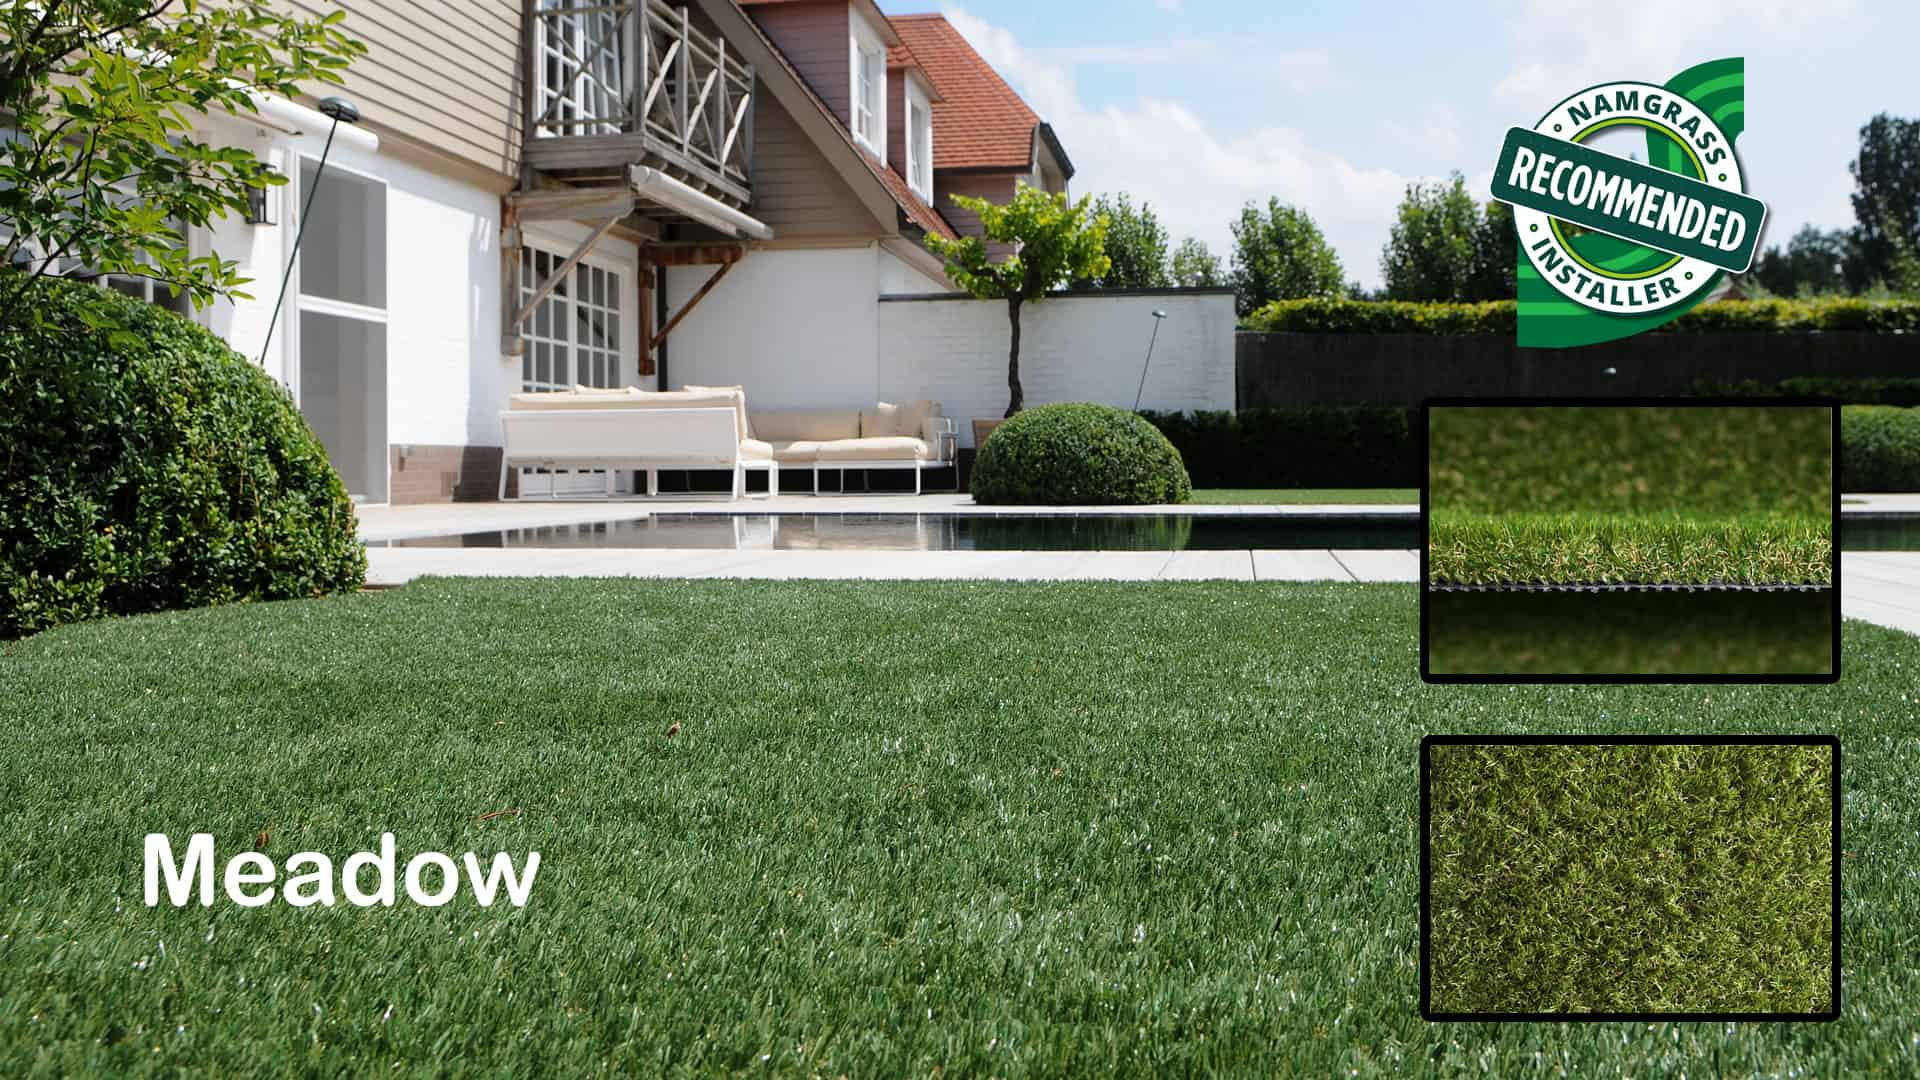 Meadow Namgrass artificial grass